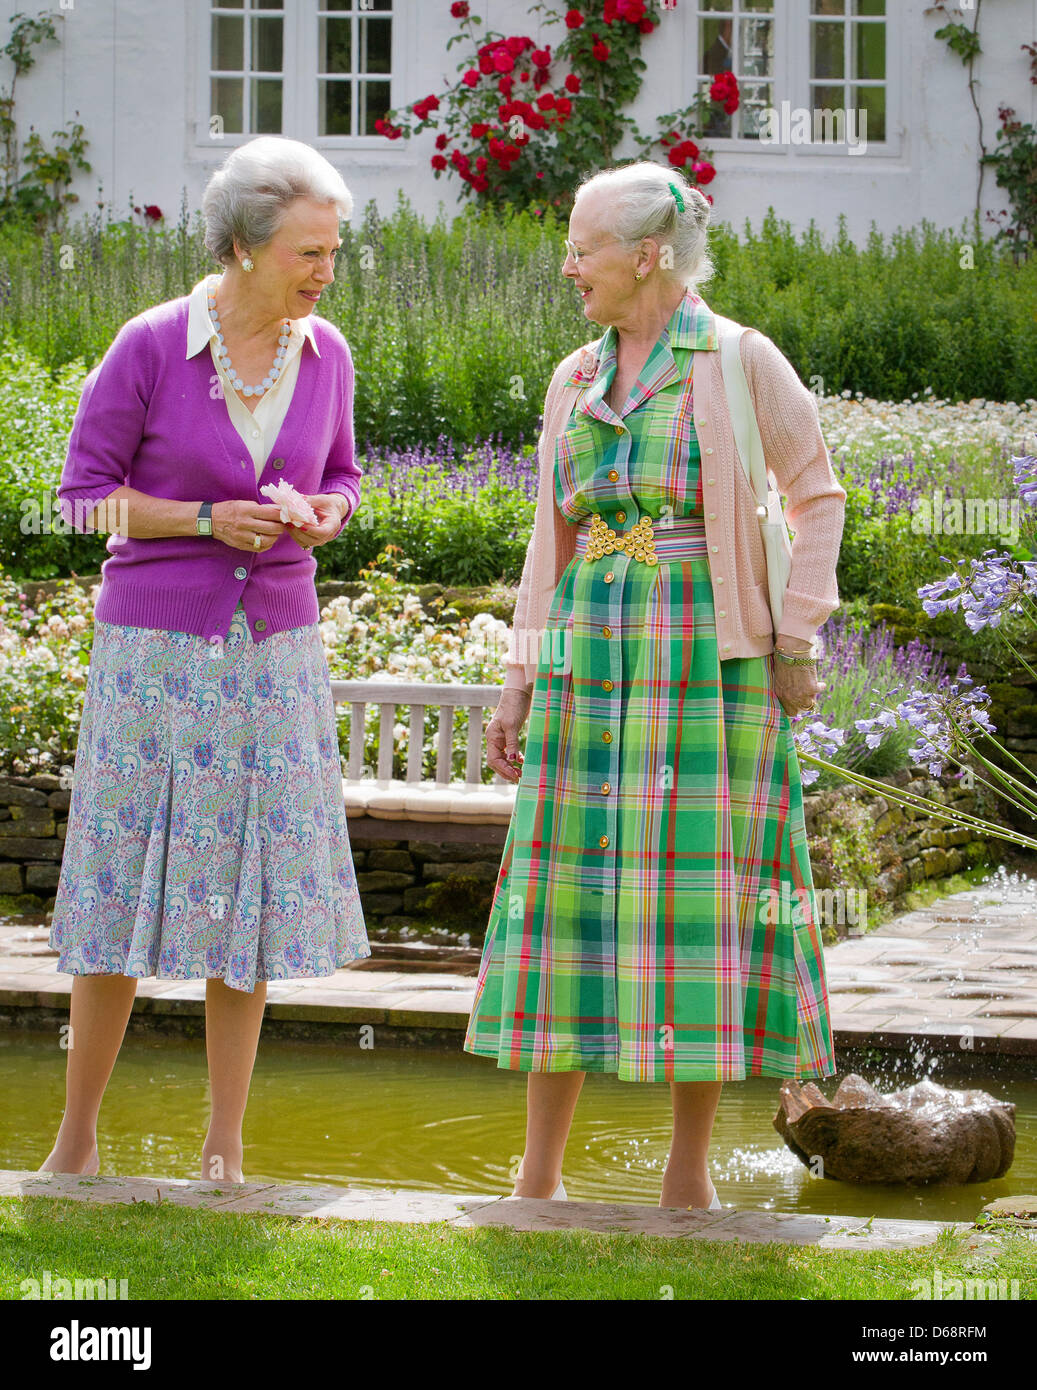 Queen Margrethe (R) and Princess Benedikte attend the annual photo session at Grasten Palace in Grasten, Denmark, - Stock Image